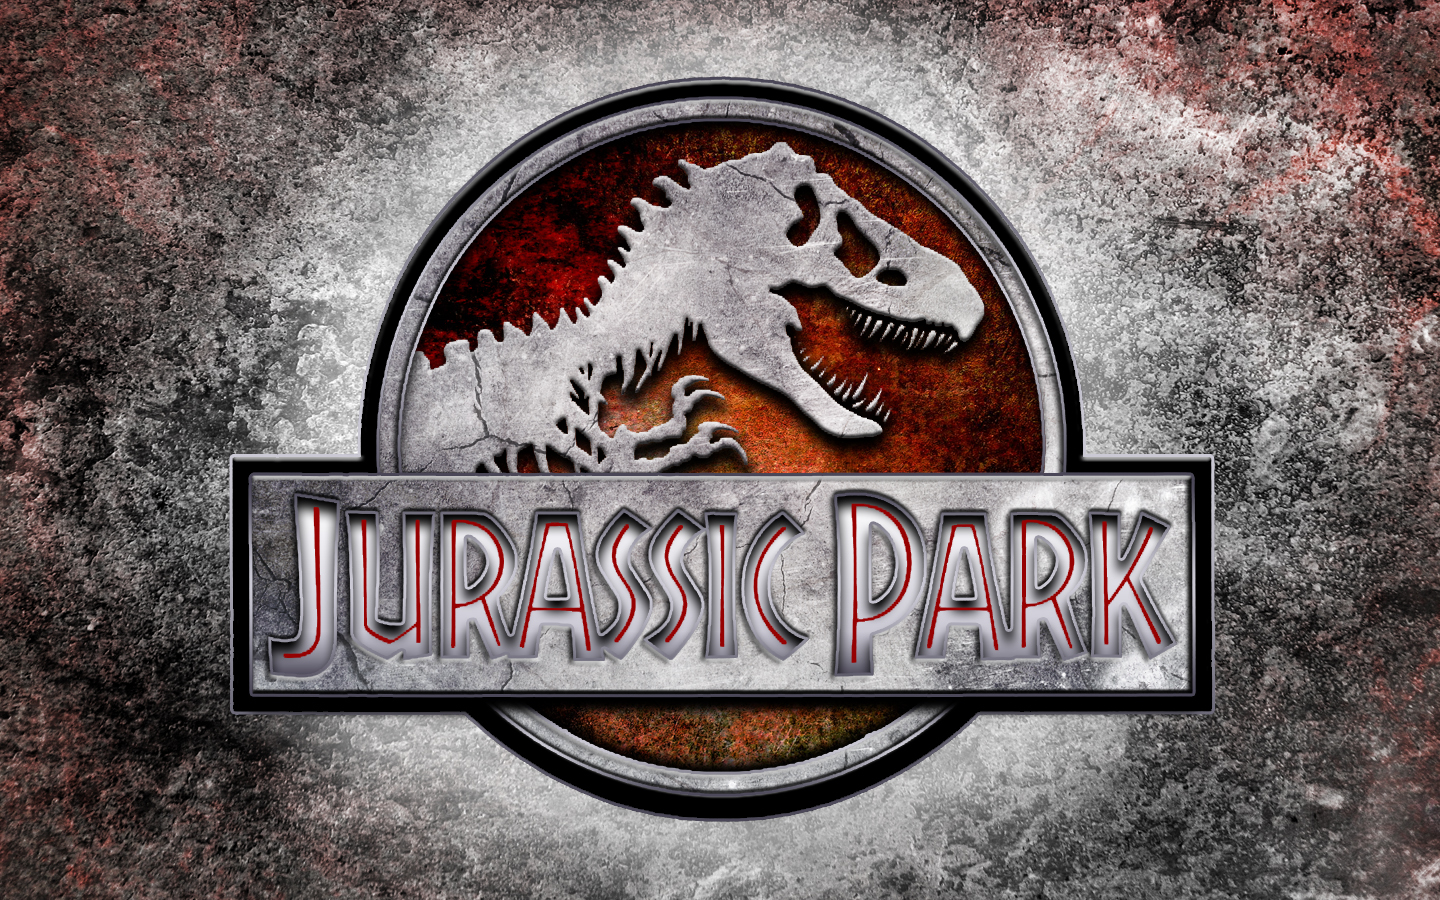 jurassic park logo photos